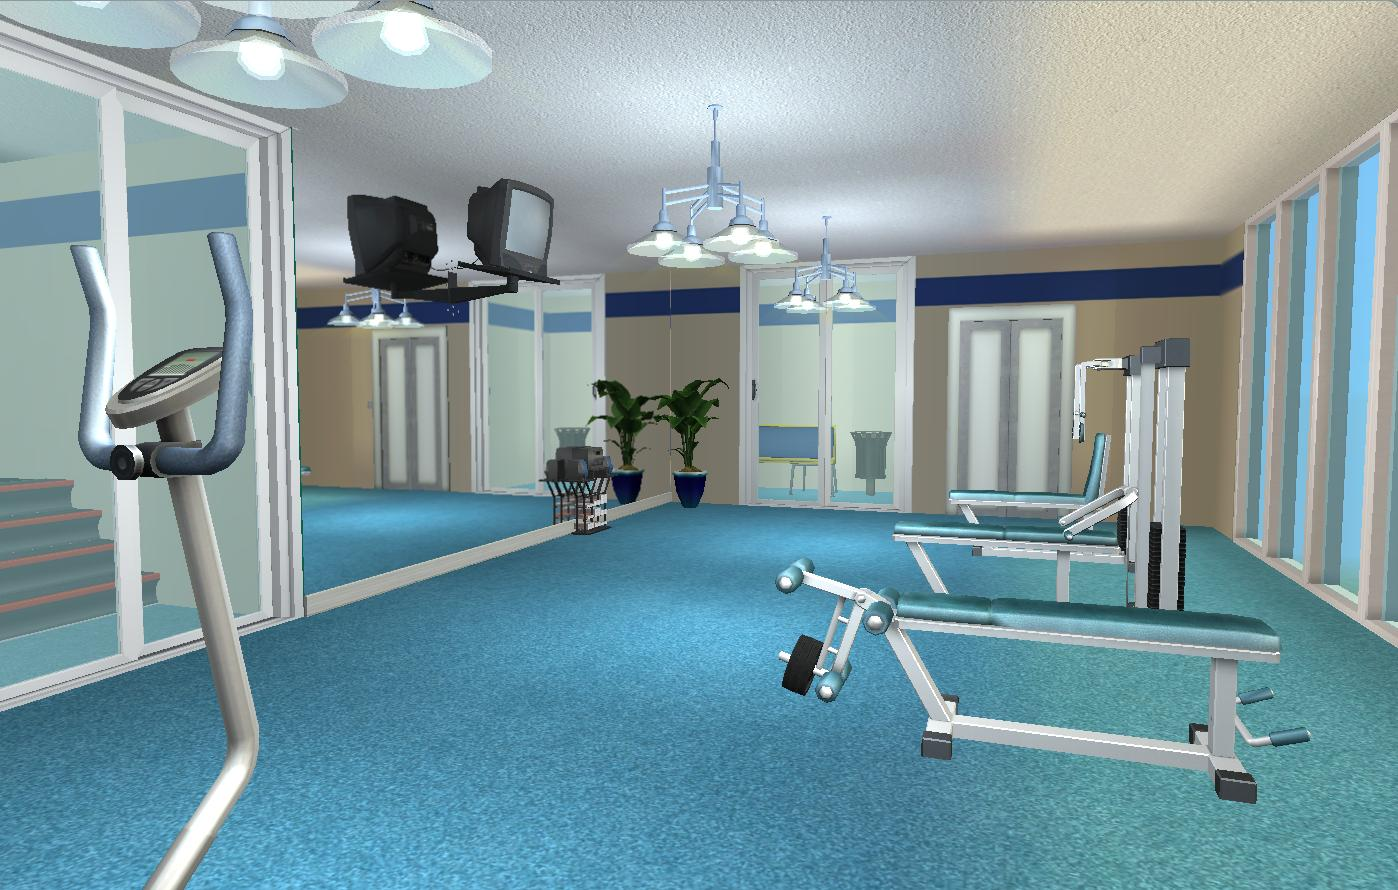 Mod the sims adrenaline gymnasium cityville series